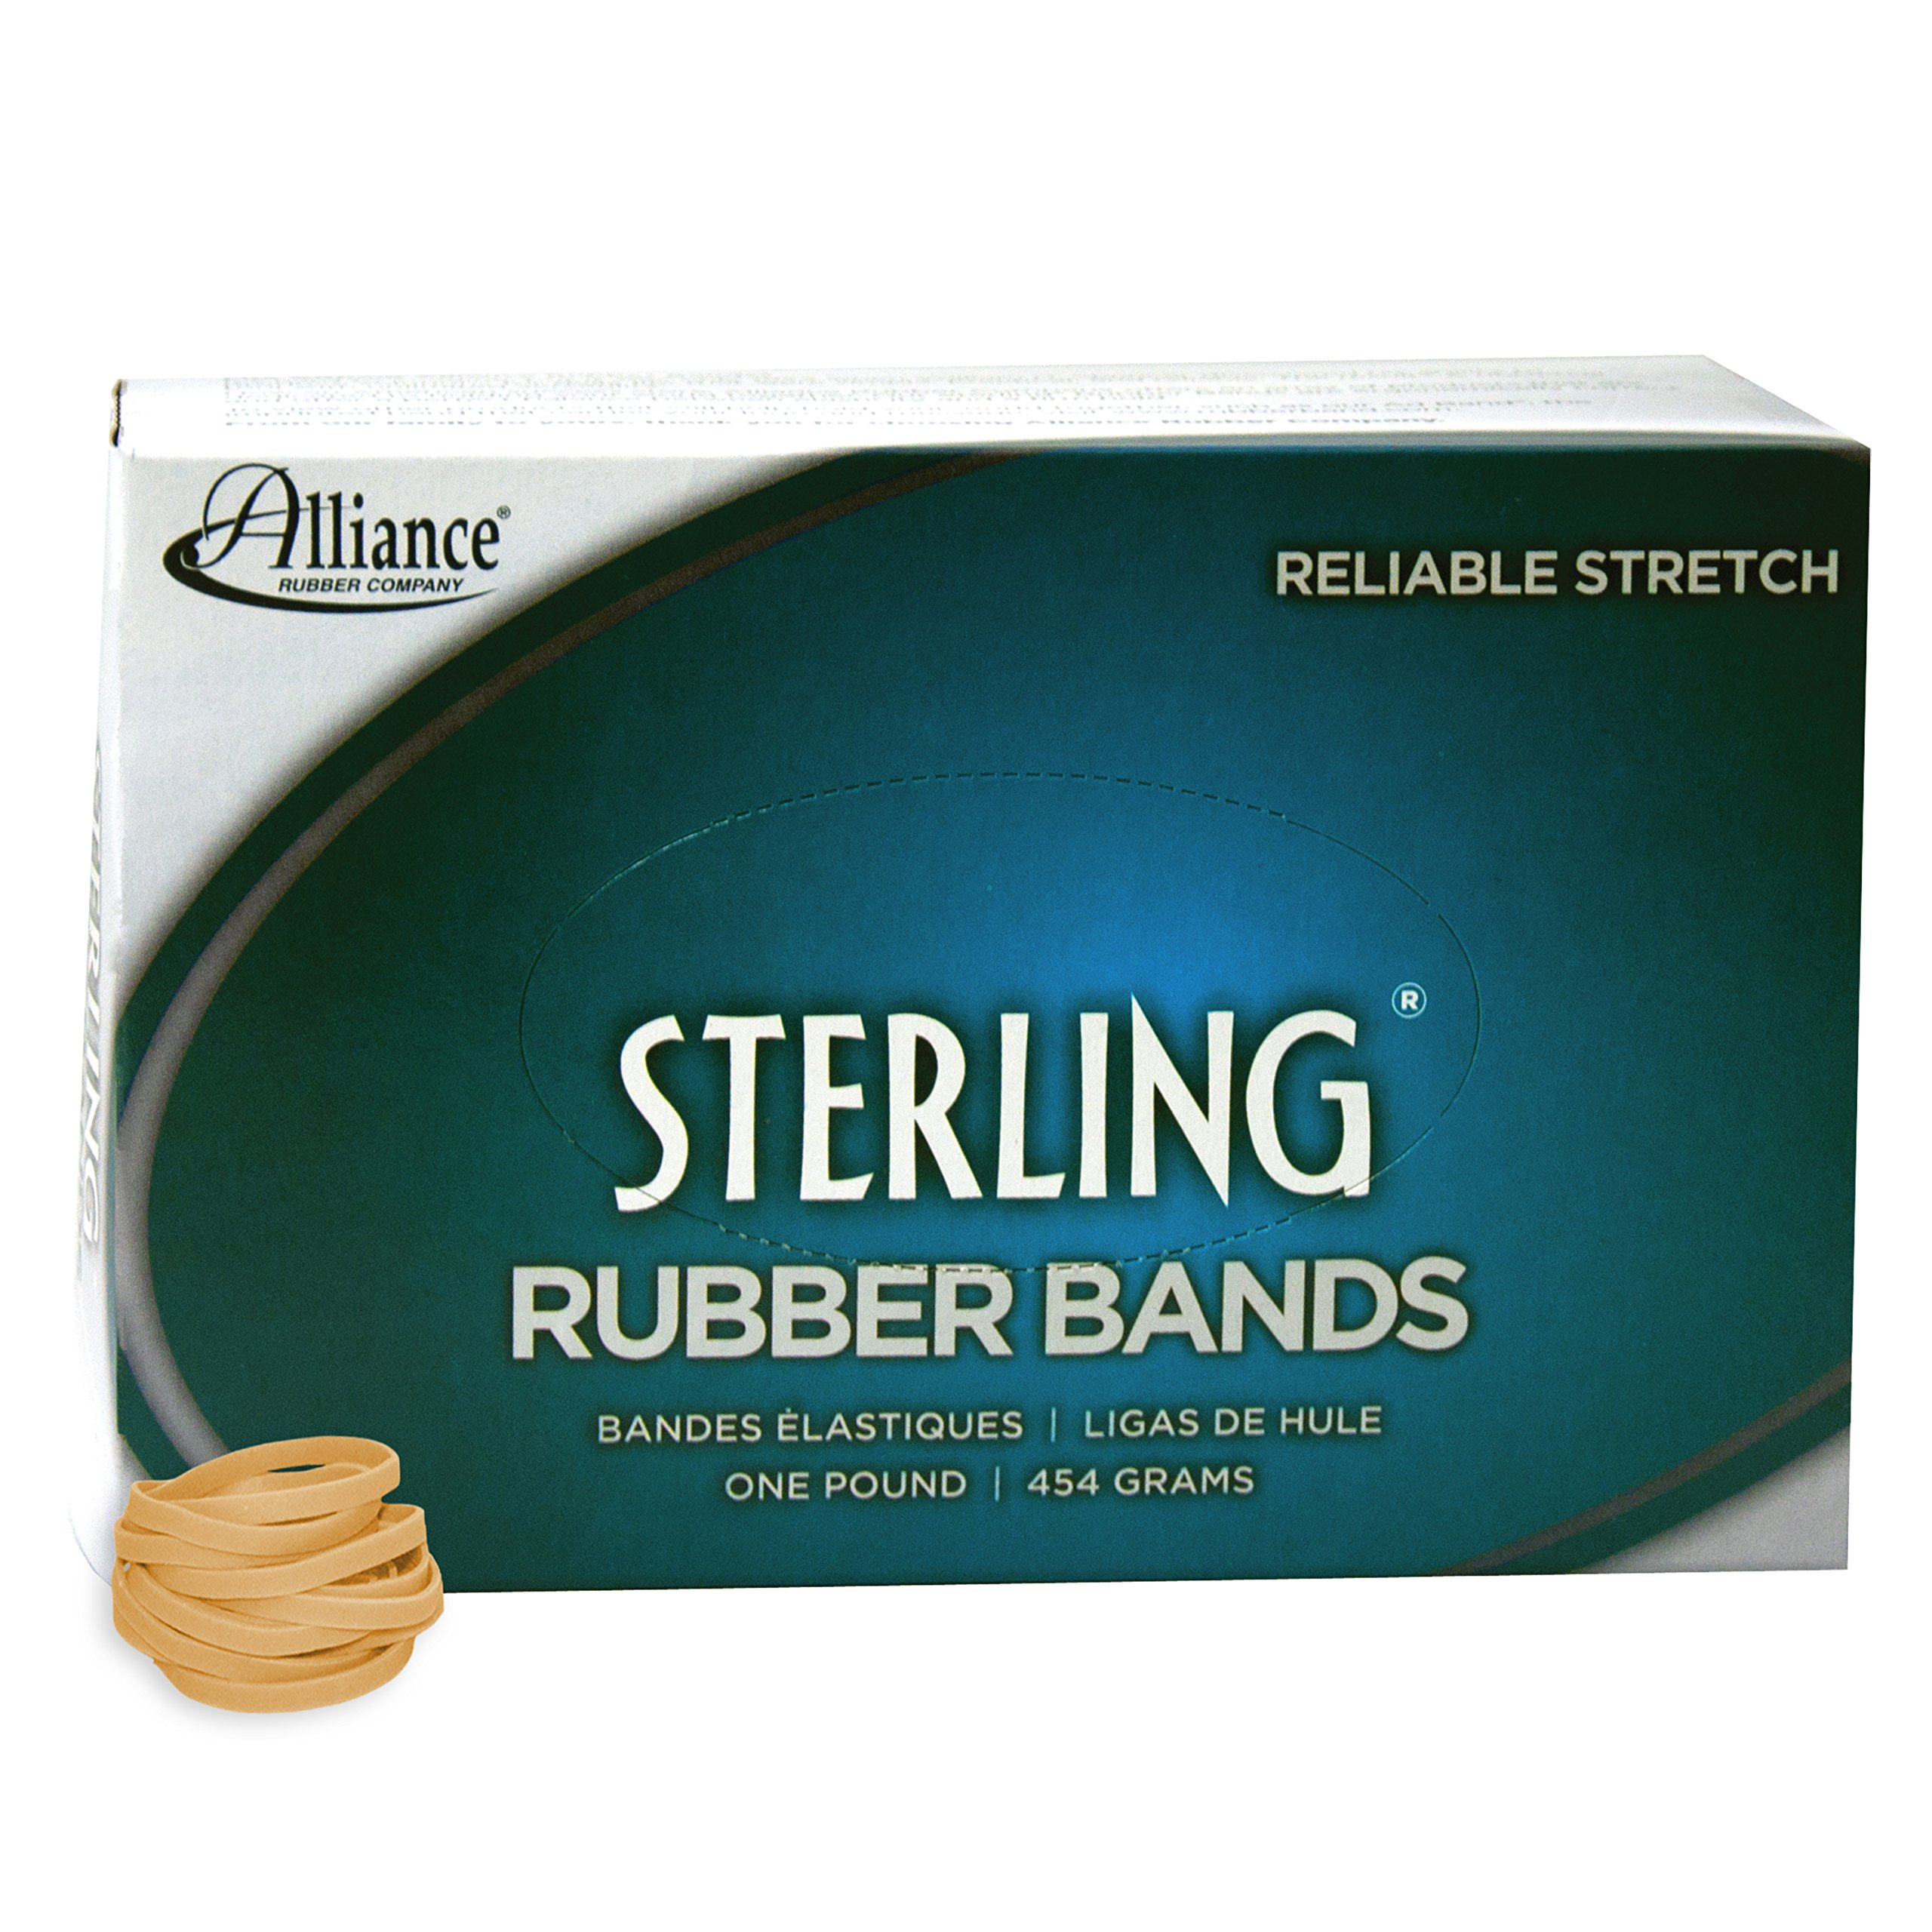 Alliance Rubber 24275 Sterling Rubber Bands Size #27, 1 lb Box Contains Approx. 2400 Bands (1 1/4'' x 1/8'', Natural Crepe)